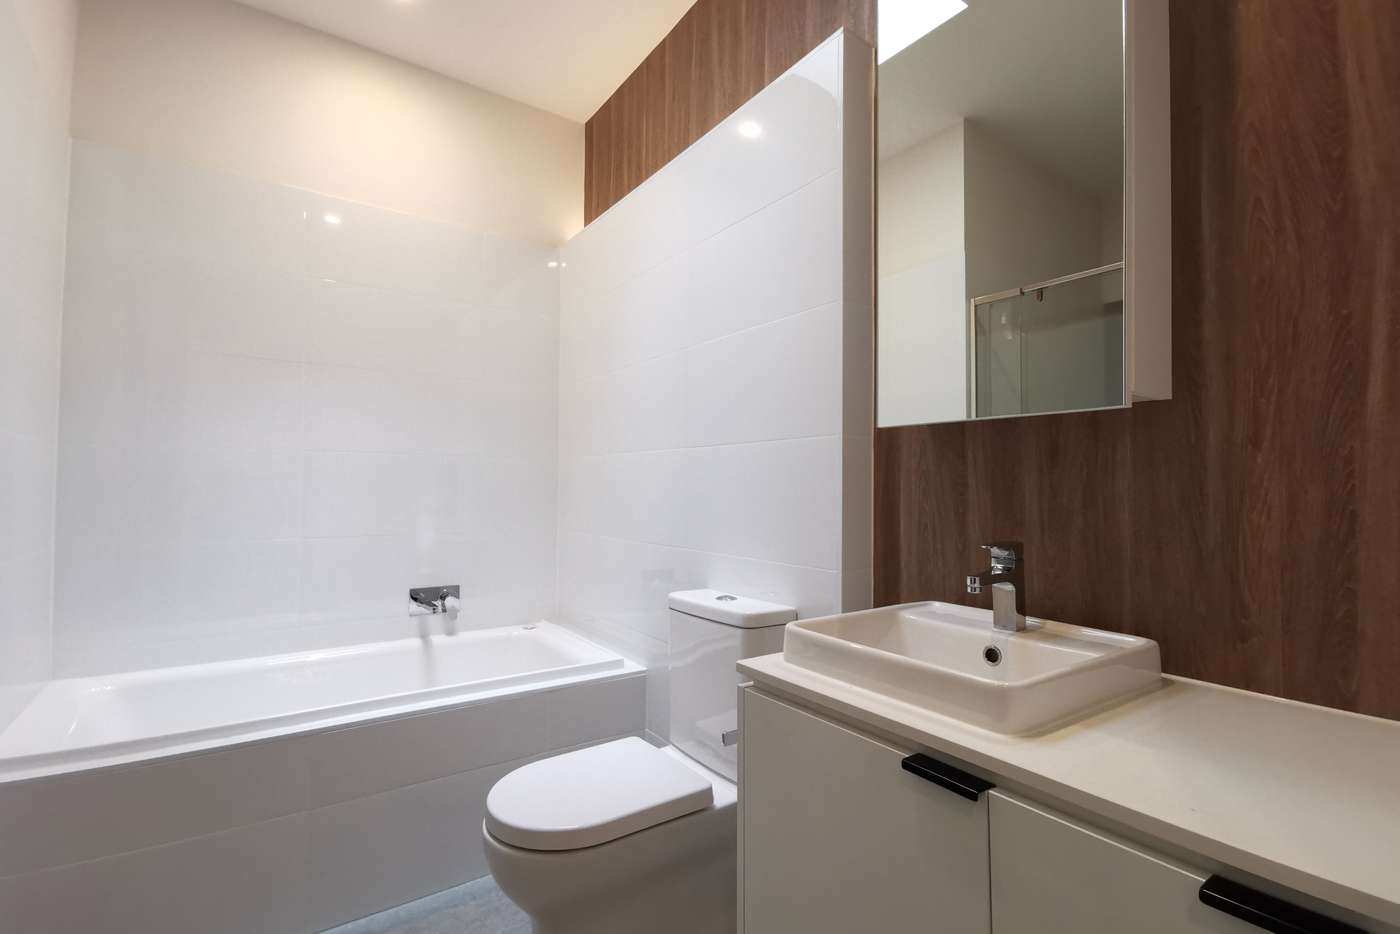 Sixth view of Homely townhouse listing, 86 Harvest Court, Doncaster VIC 3108